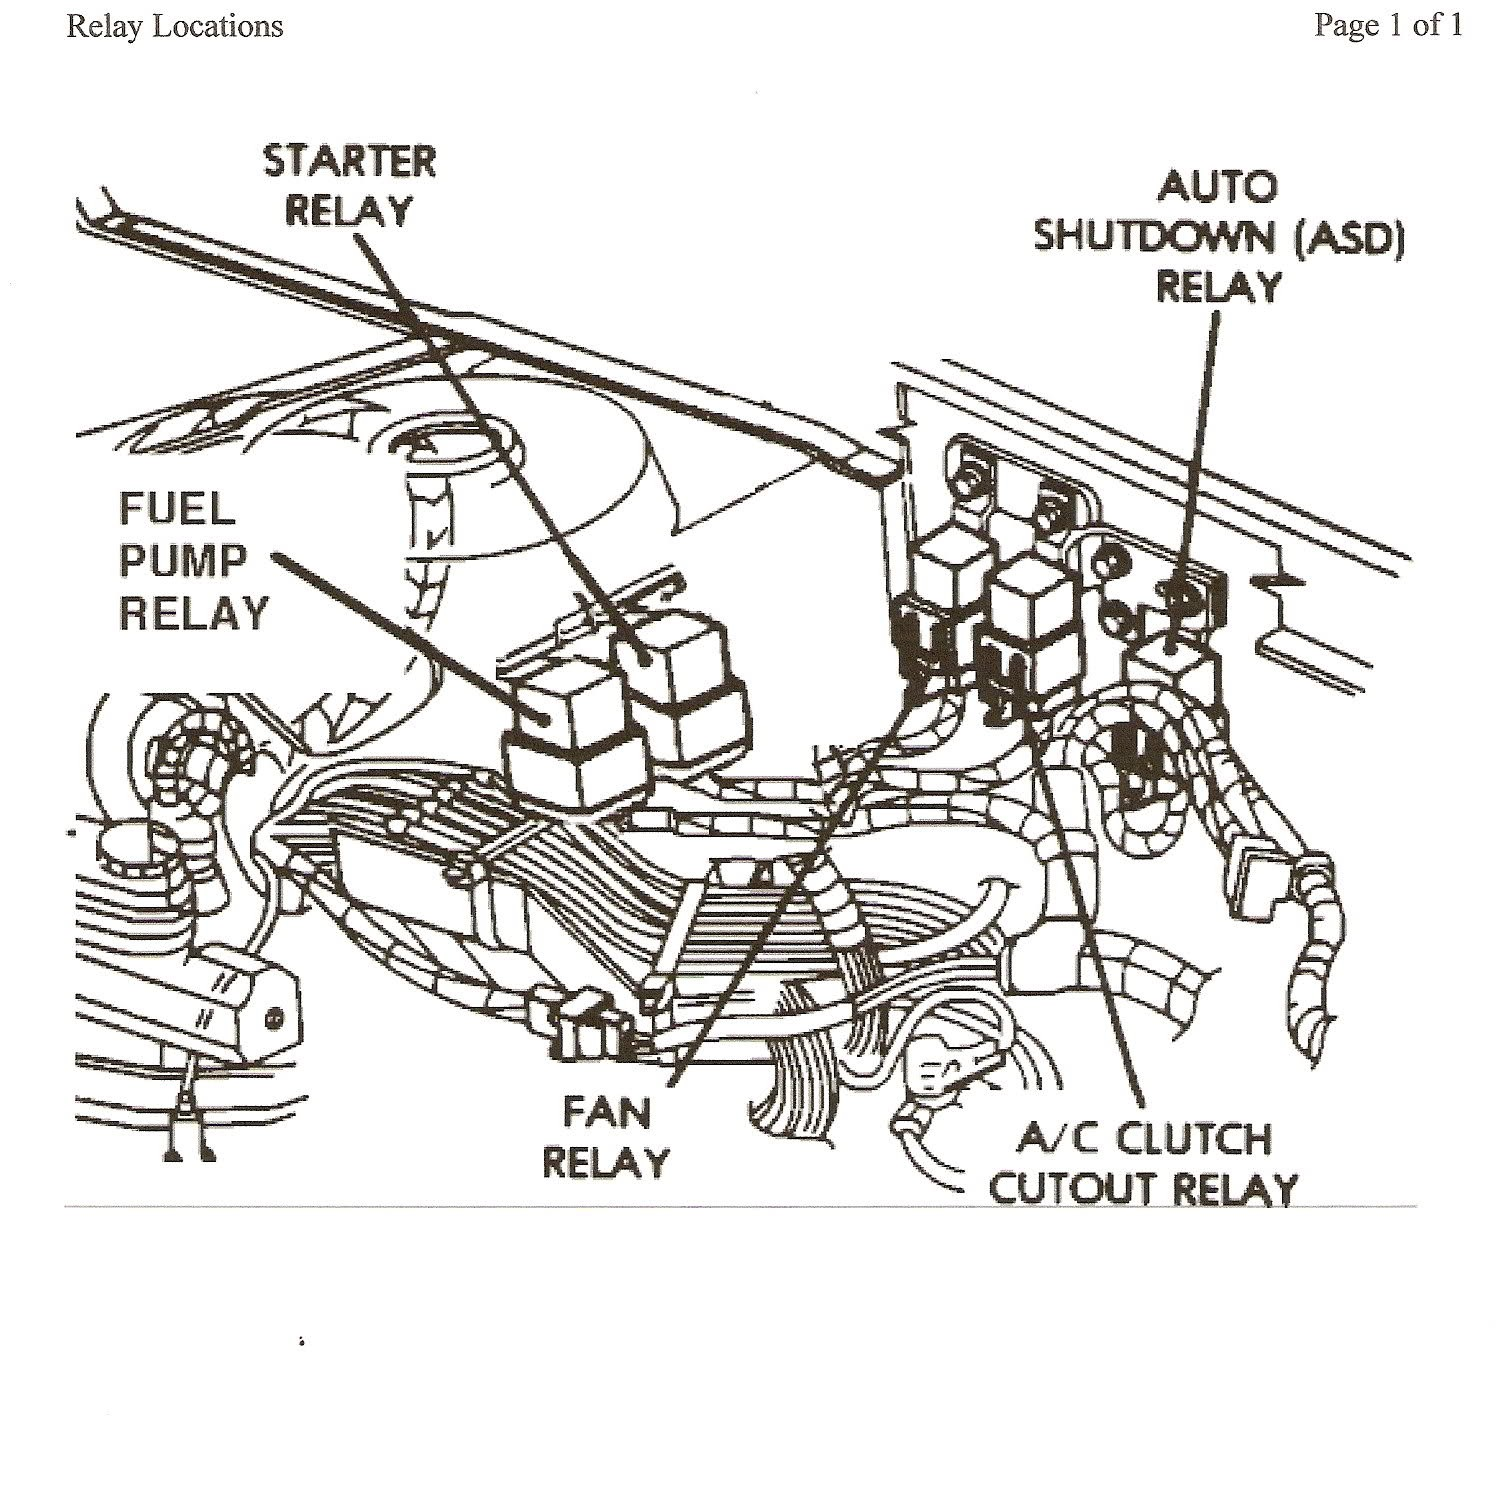 2004 Chrysler Pacifica Asd Wiring Diagram